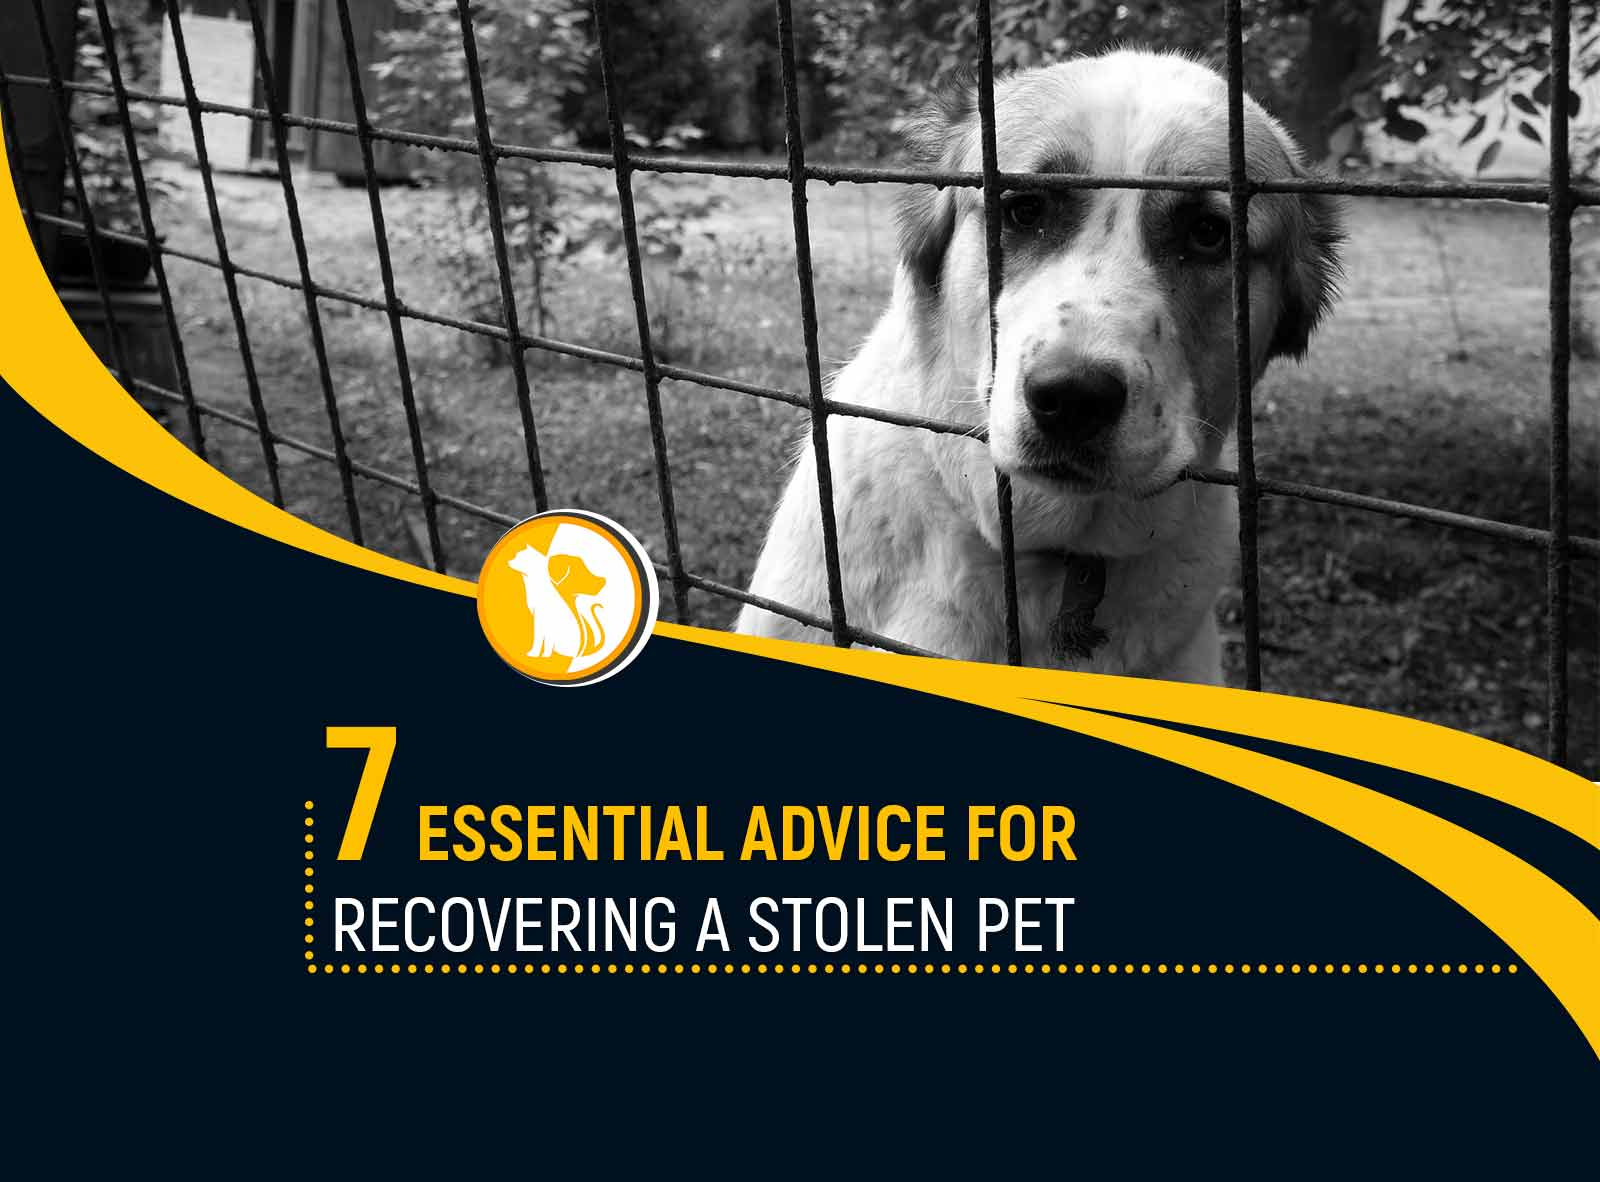 7 Essential Advice for Recovering a Stolen Pet